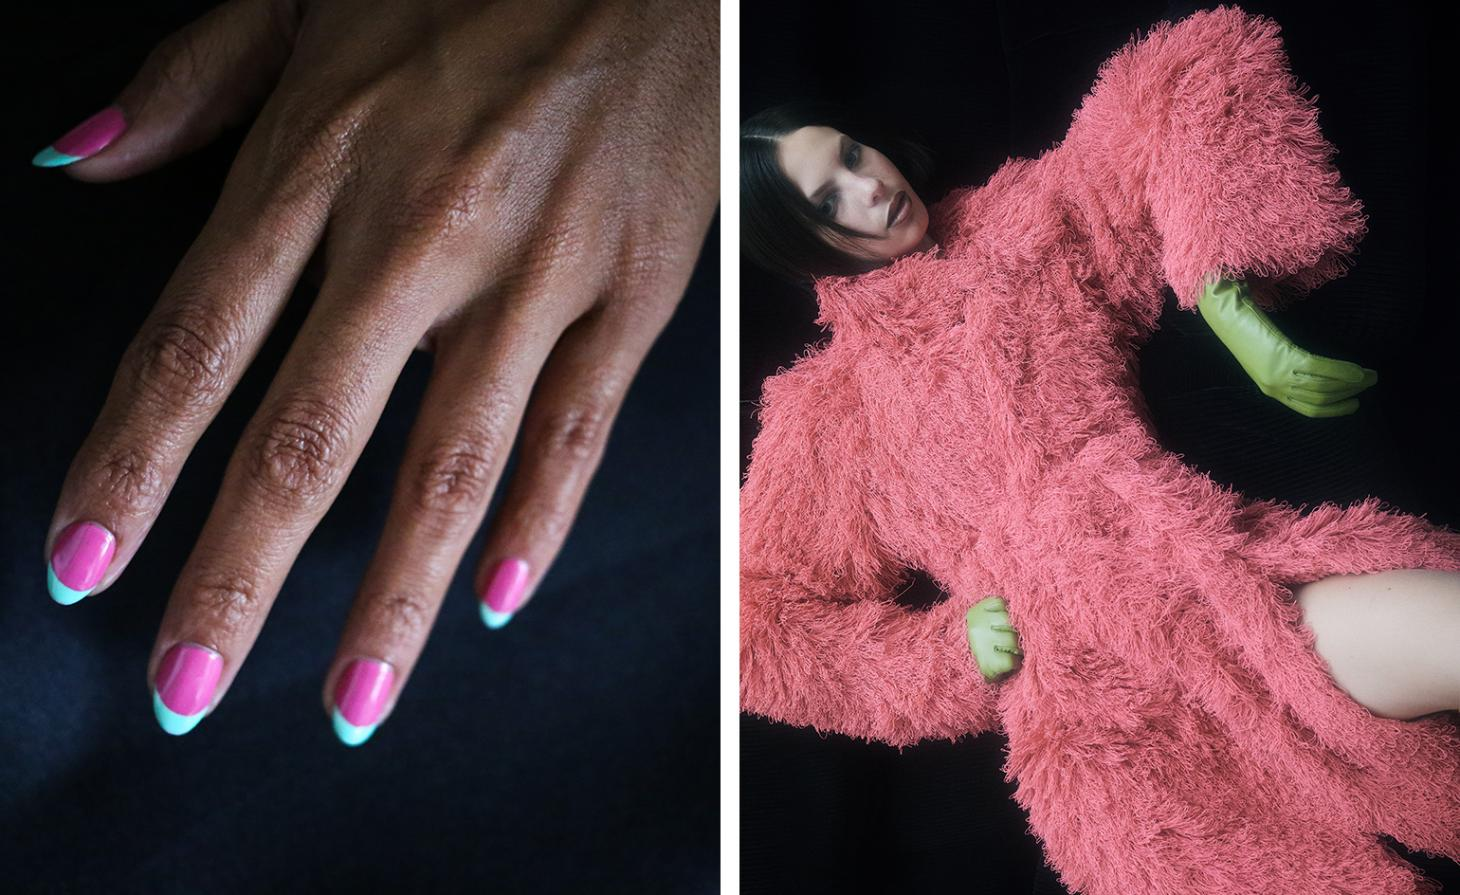 Jacket by Bottega Veneta. Gloves by Ines. Photography by Romain Duquesne. Fashion by Jason Hughes.Next to pink and green french tip nails